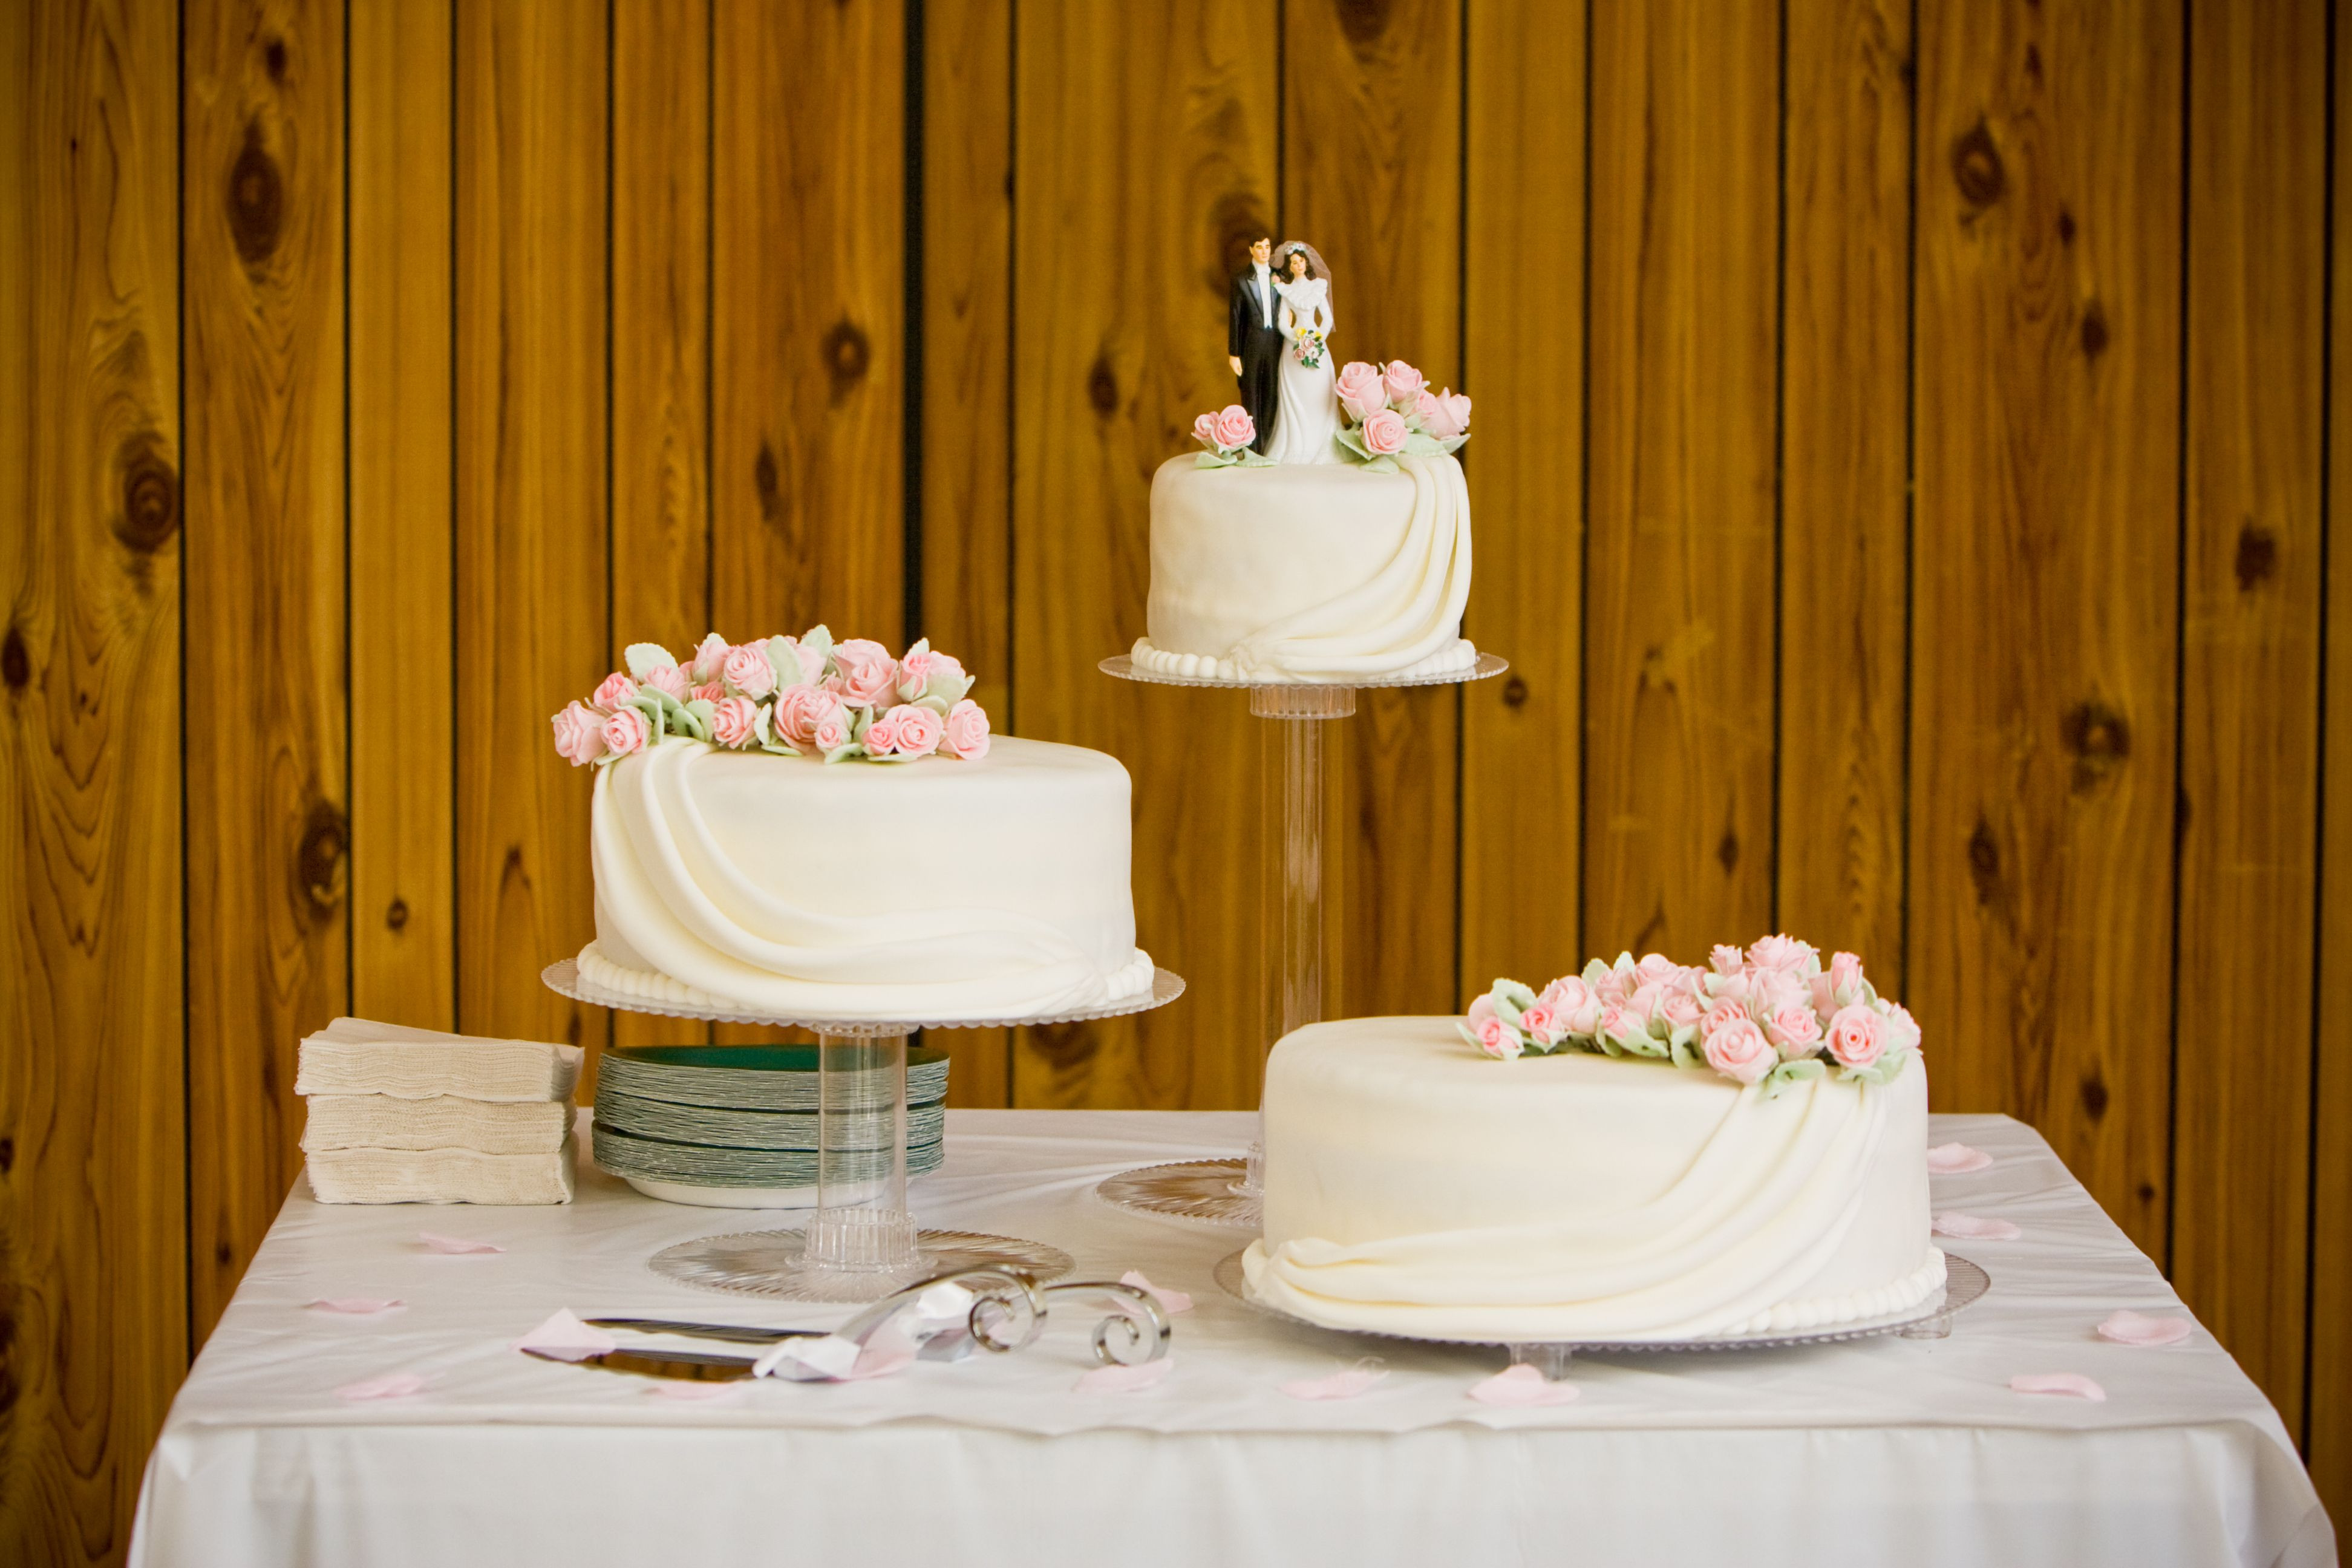 Seperate Tier Wedding Cakes  wedding cakes with separate tiers